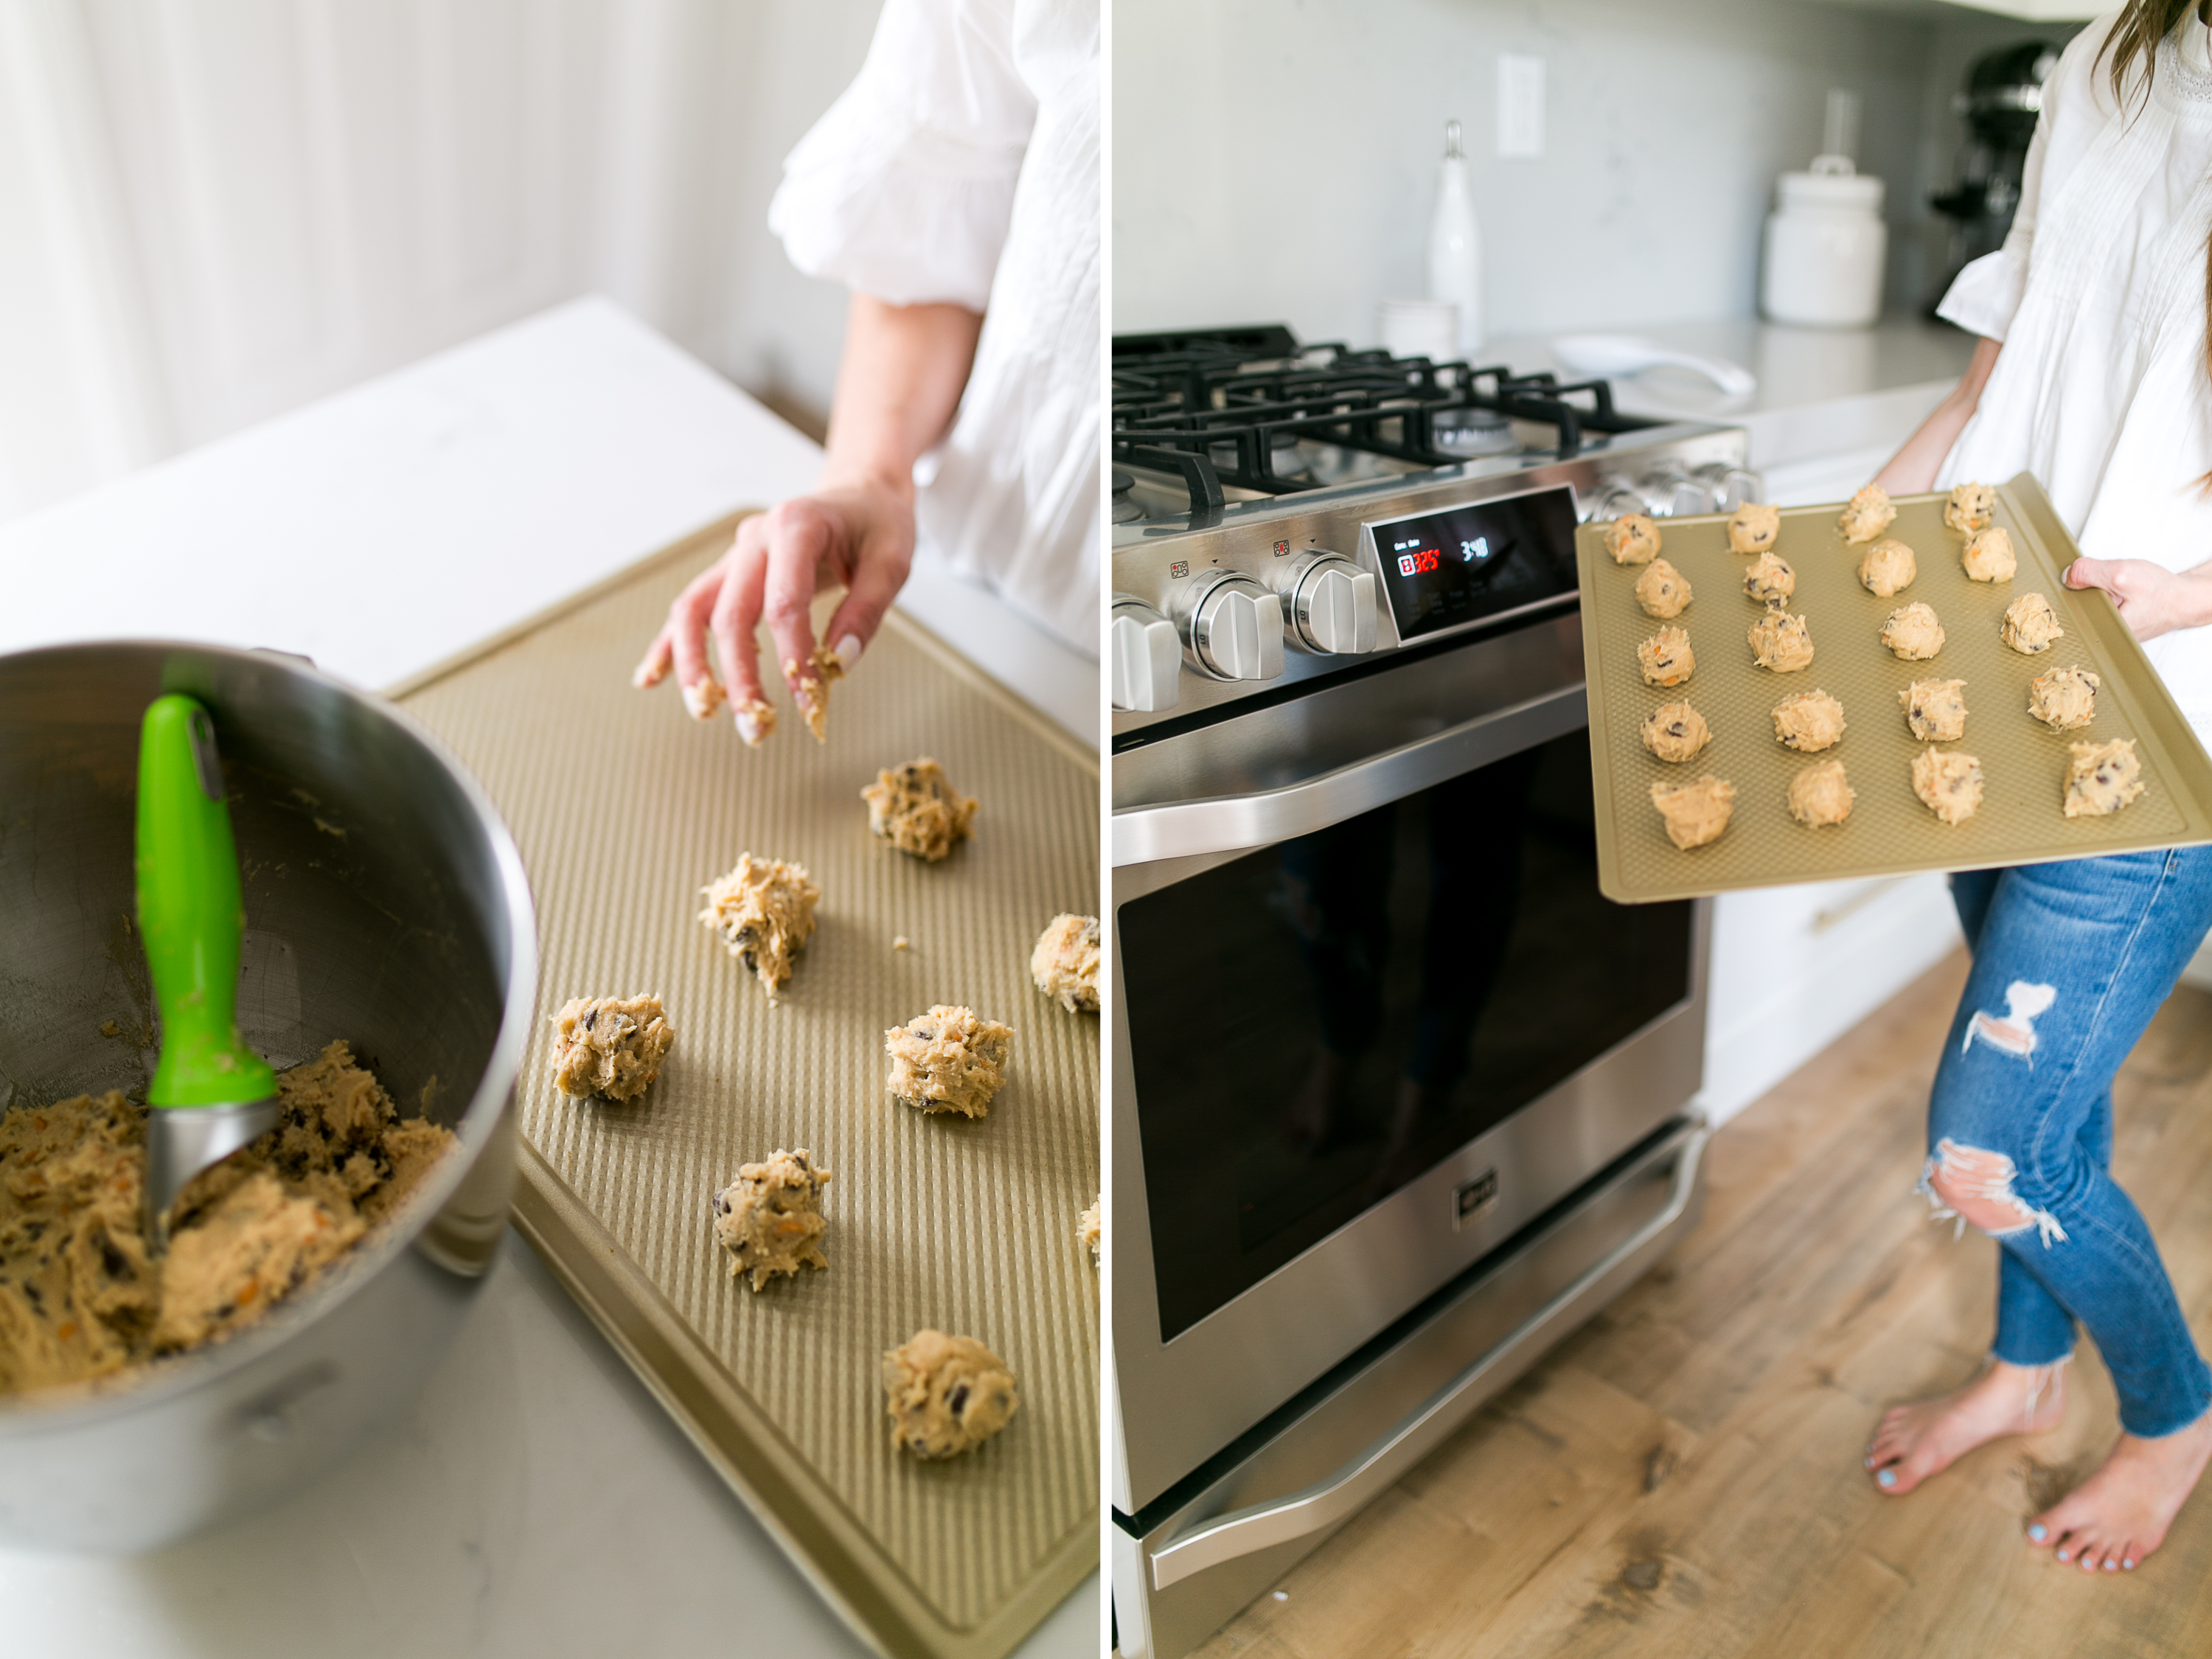 daryl-ann denner reveals white marble kitchen and shares chocolate chip cookie recipe